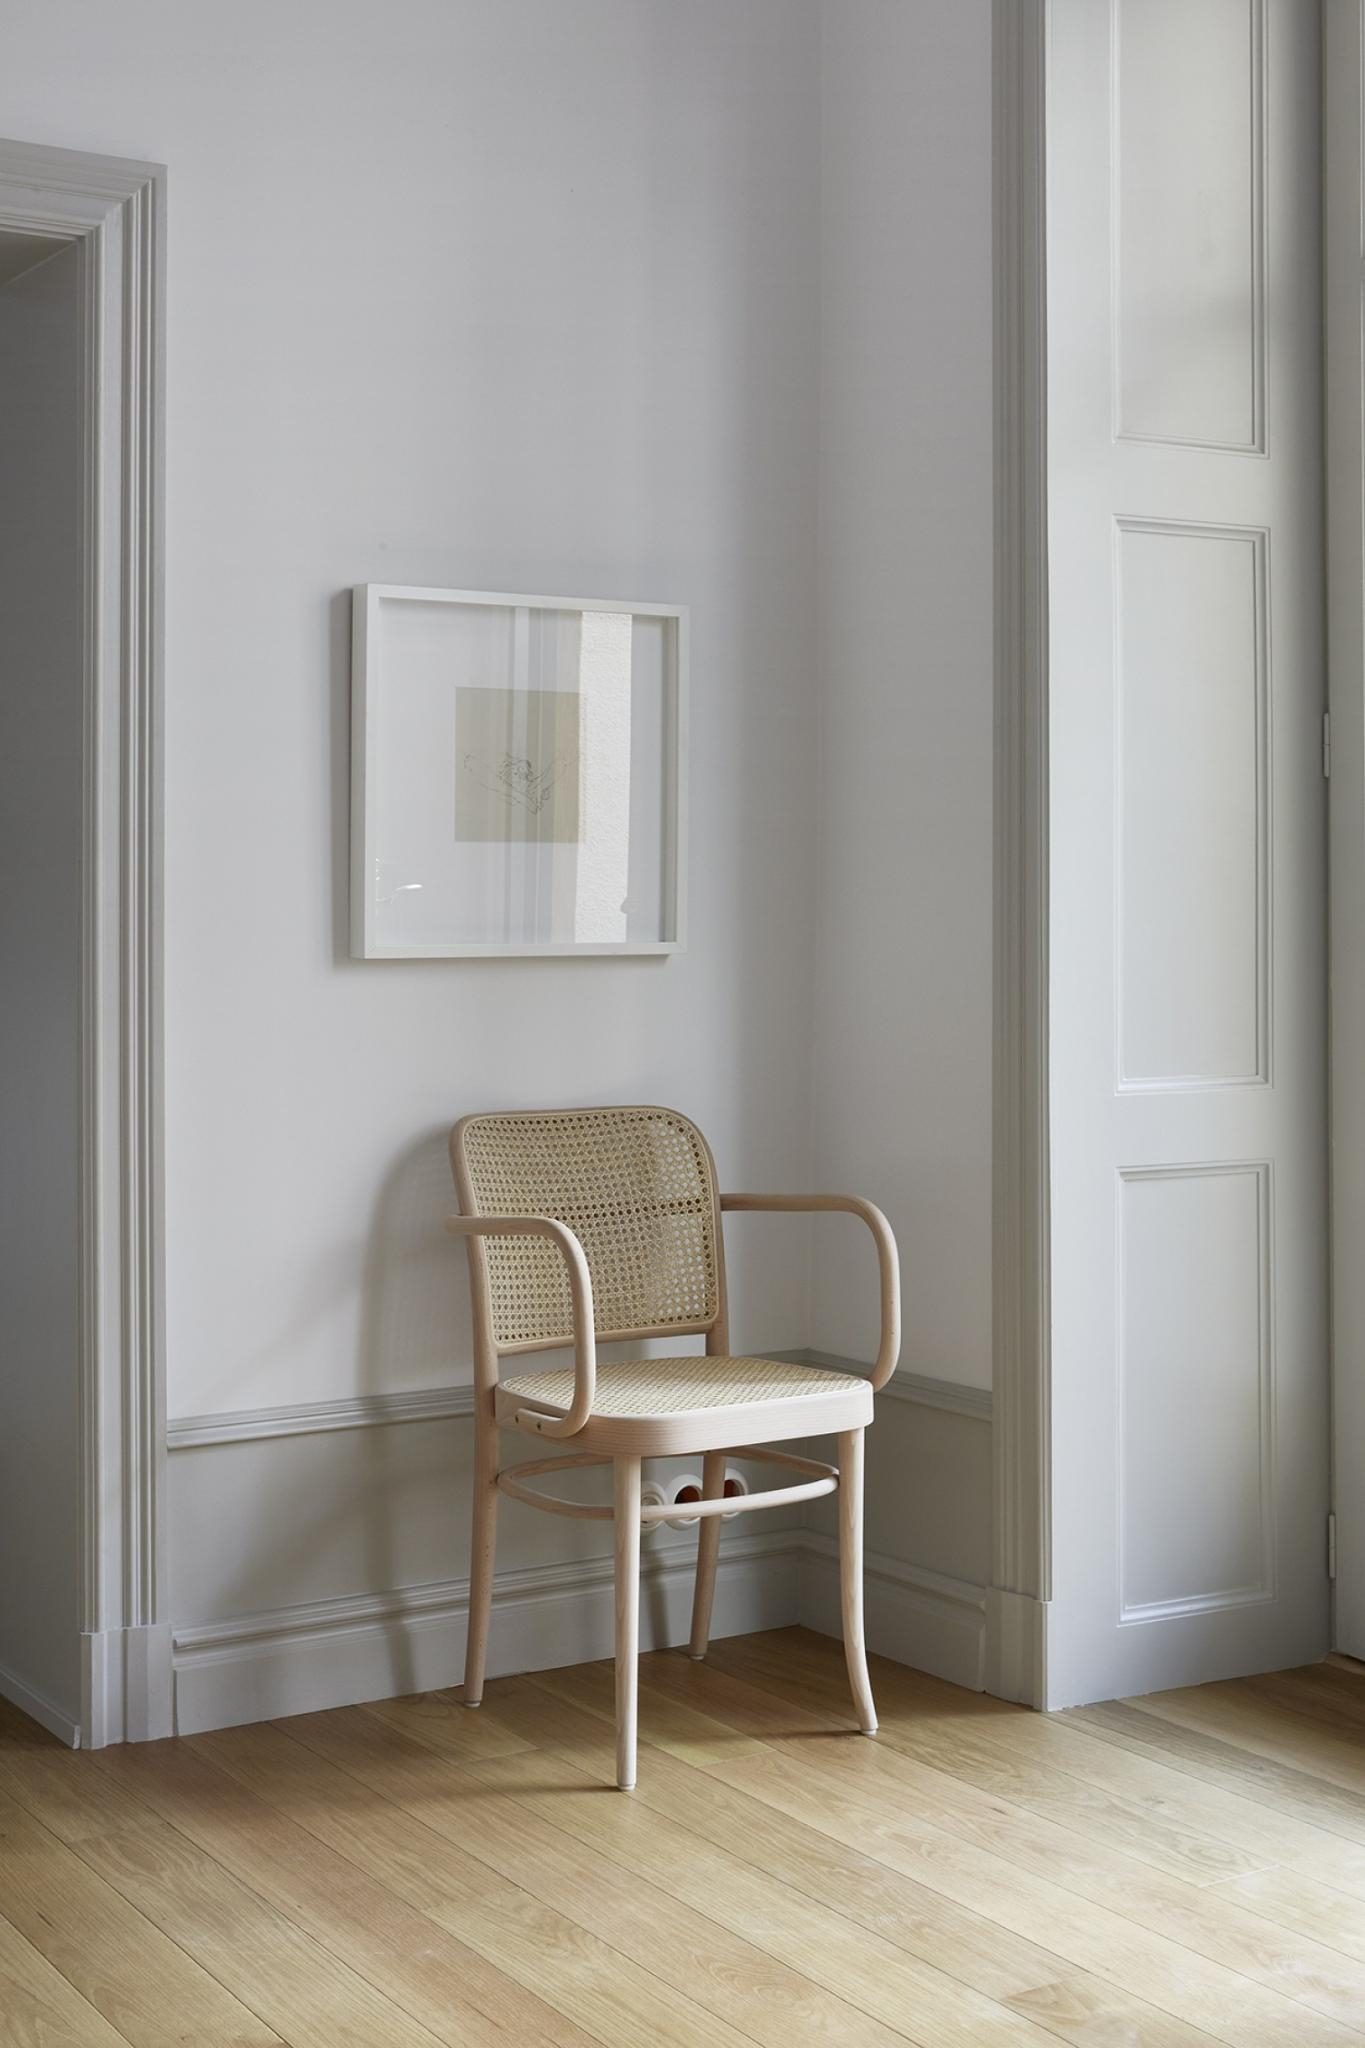 Serene Stockholm apartment with bentwood chair and framed art